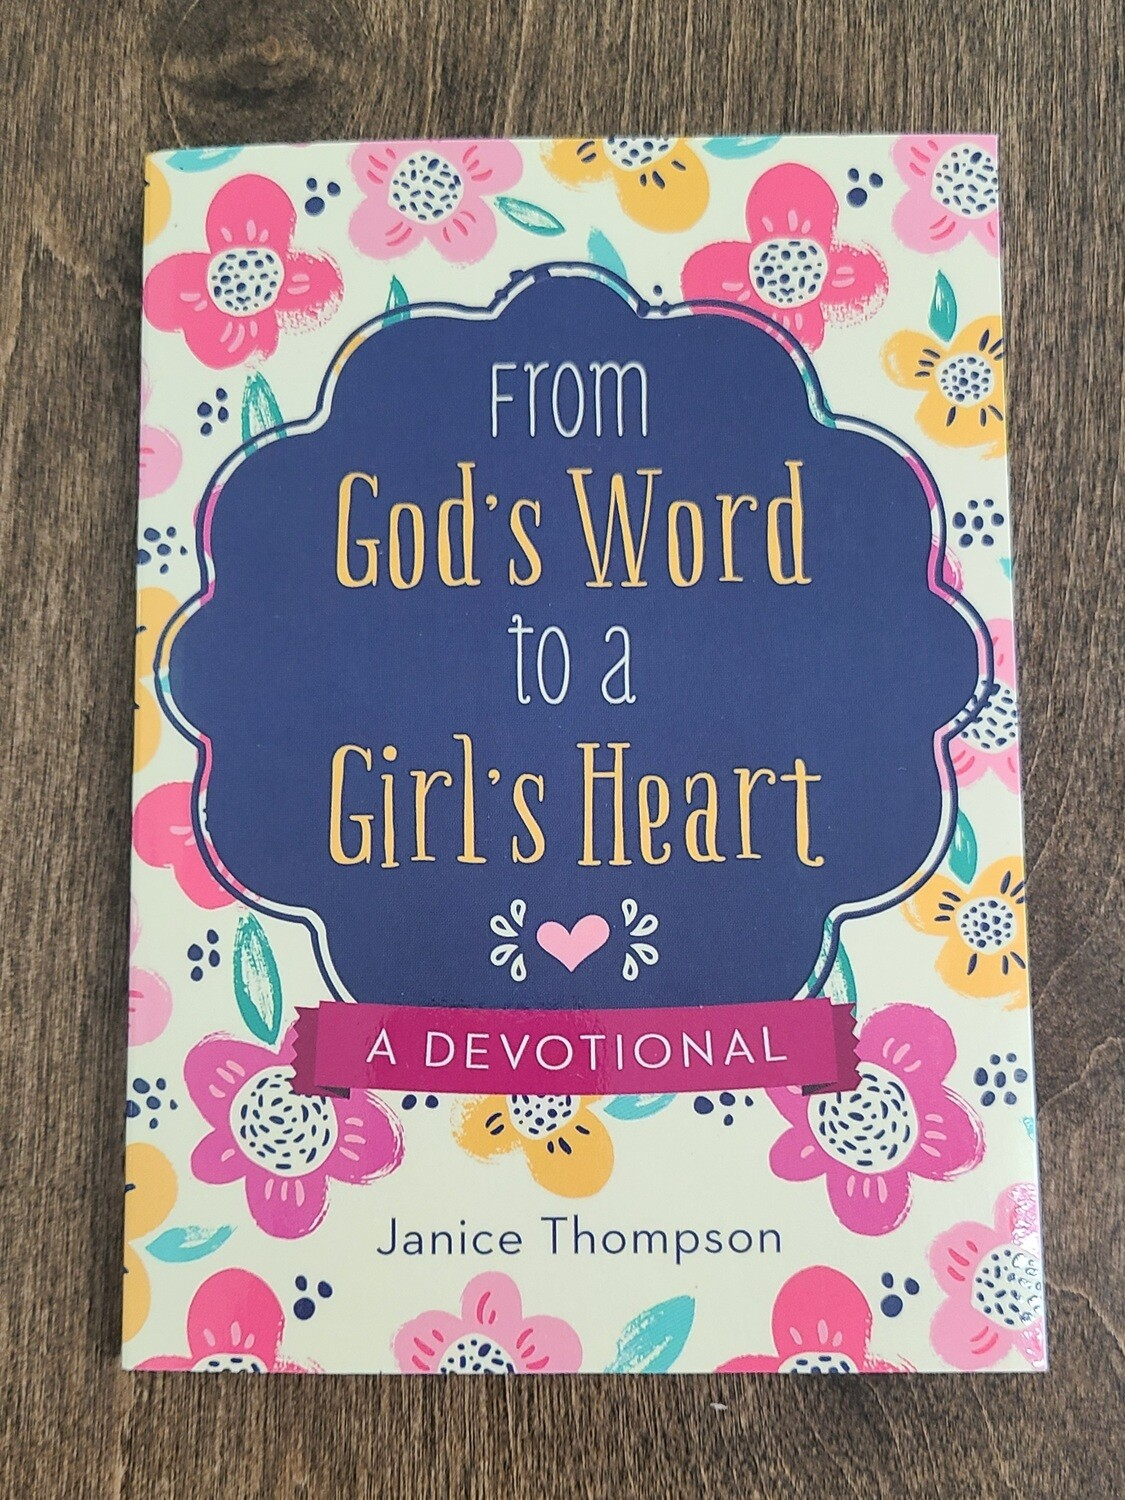 From God's Word to a Girl's Heart by Janice Thompson